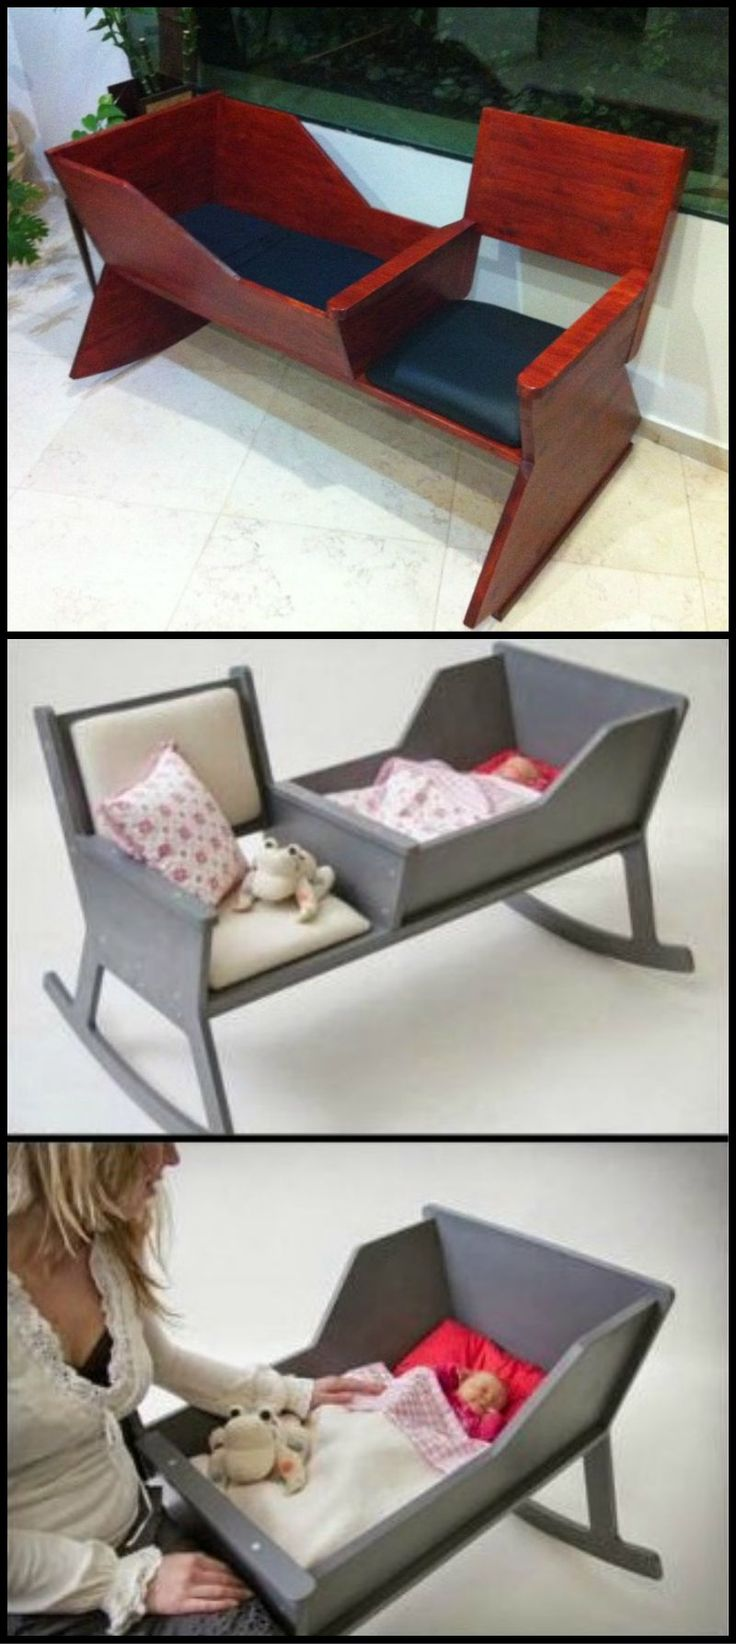 Charming How To Build A Rocking Chair With Crib. Baby CradlesRocking ...